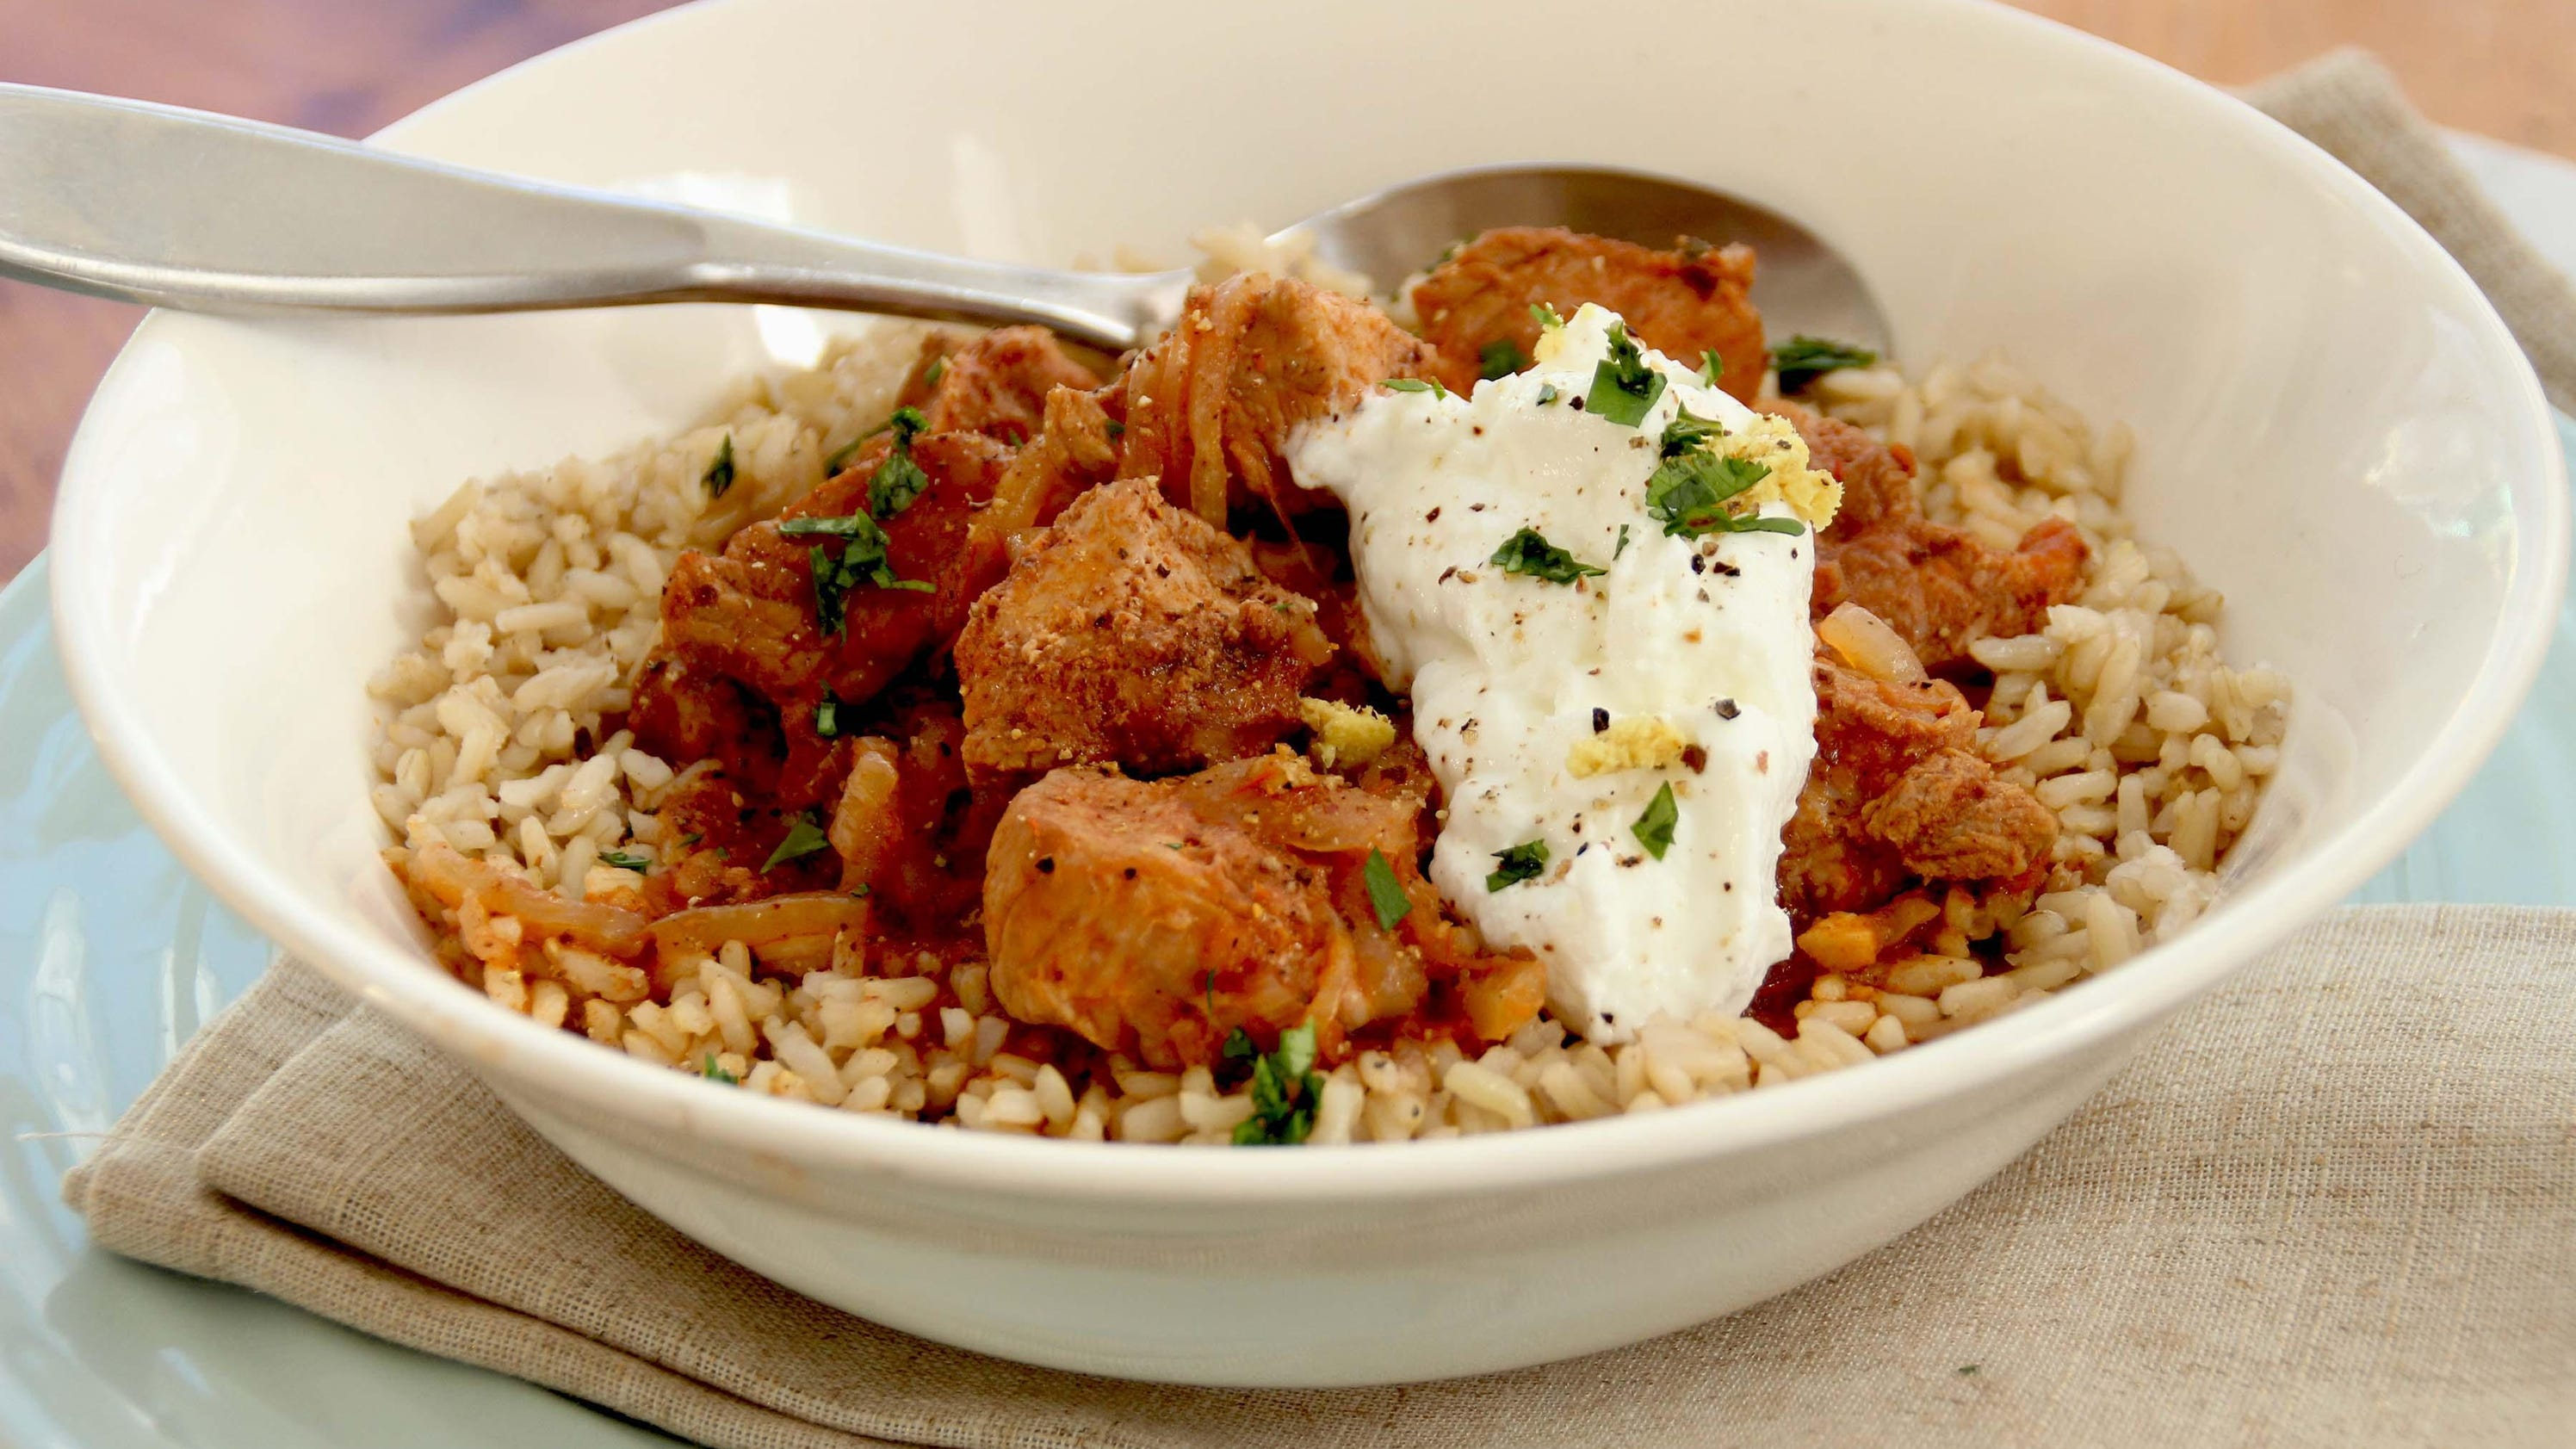 Slow cooker great for pork vindaloo Indian flavors